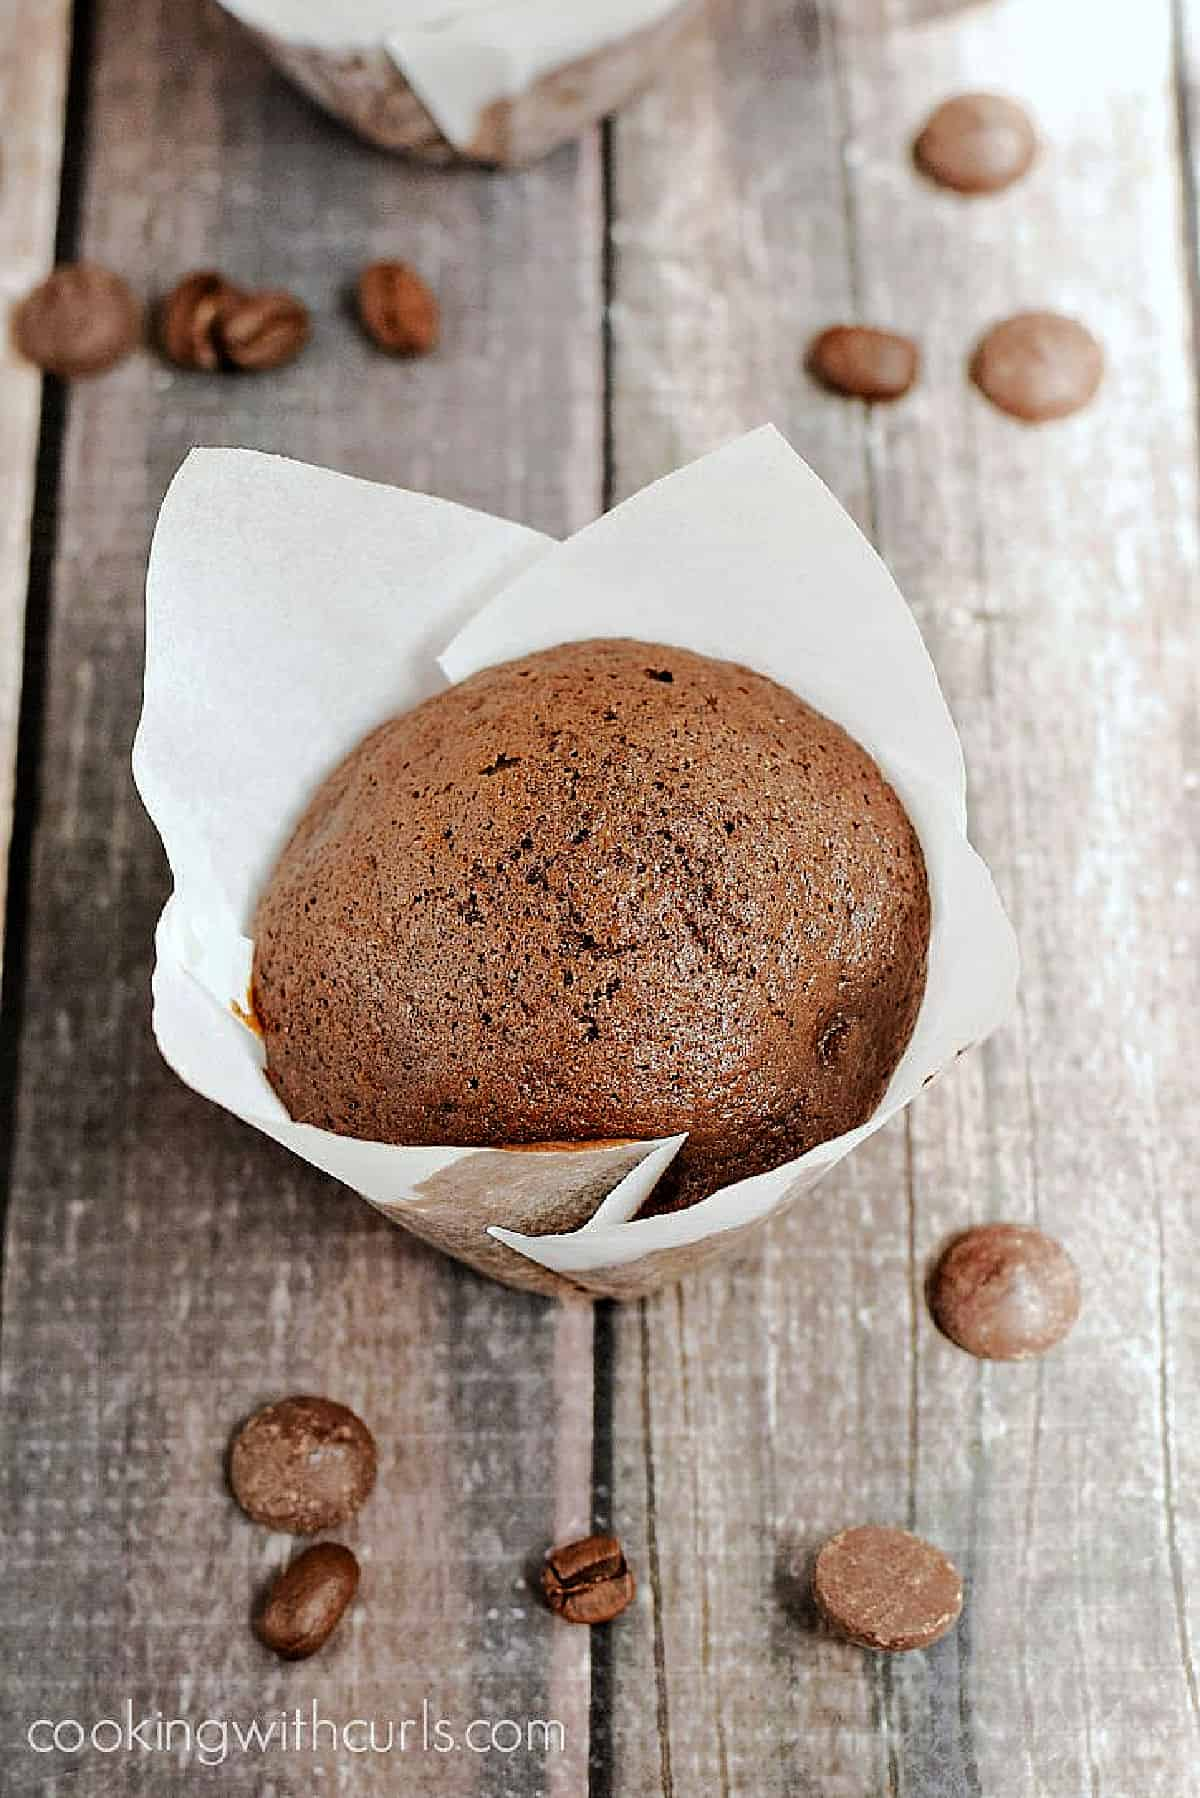 Two chocolate muffins in white paper liners surrounded by coffee beans and dark chocolate chips.